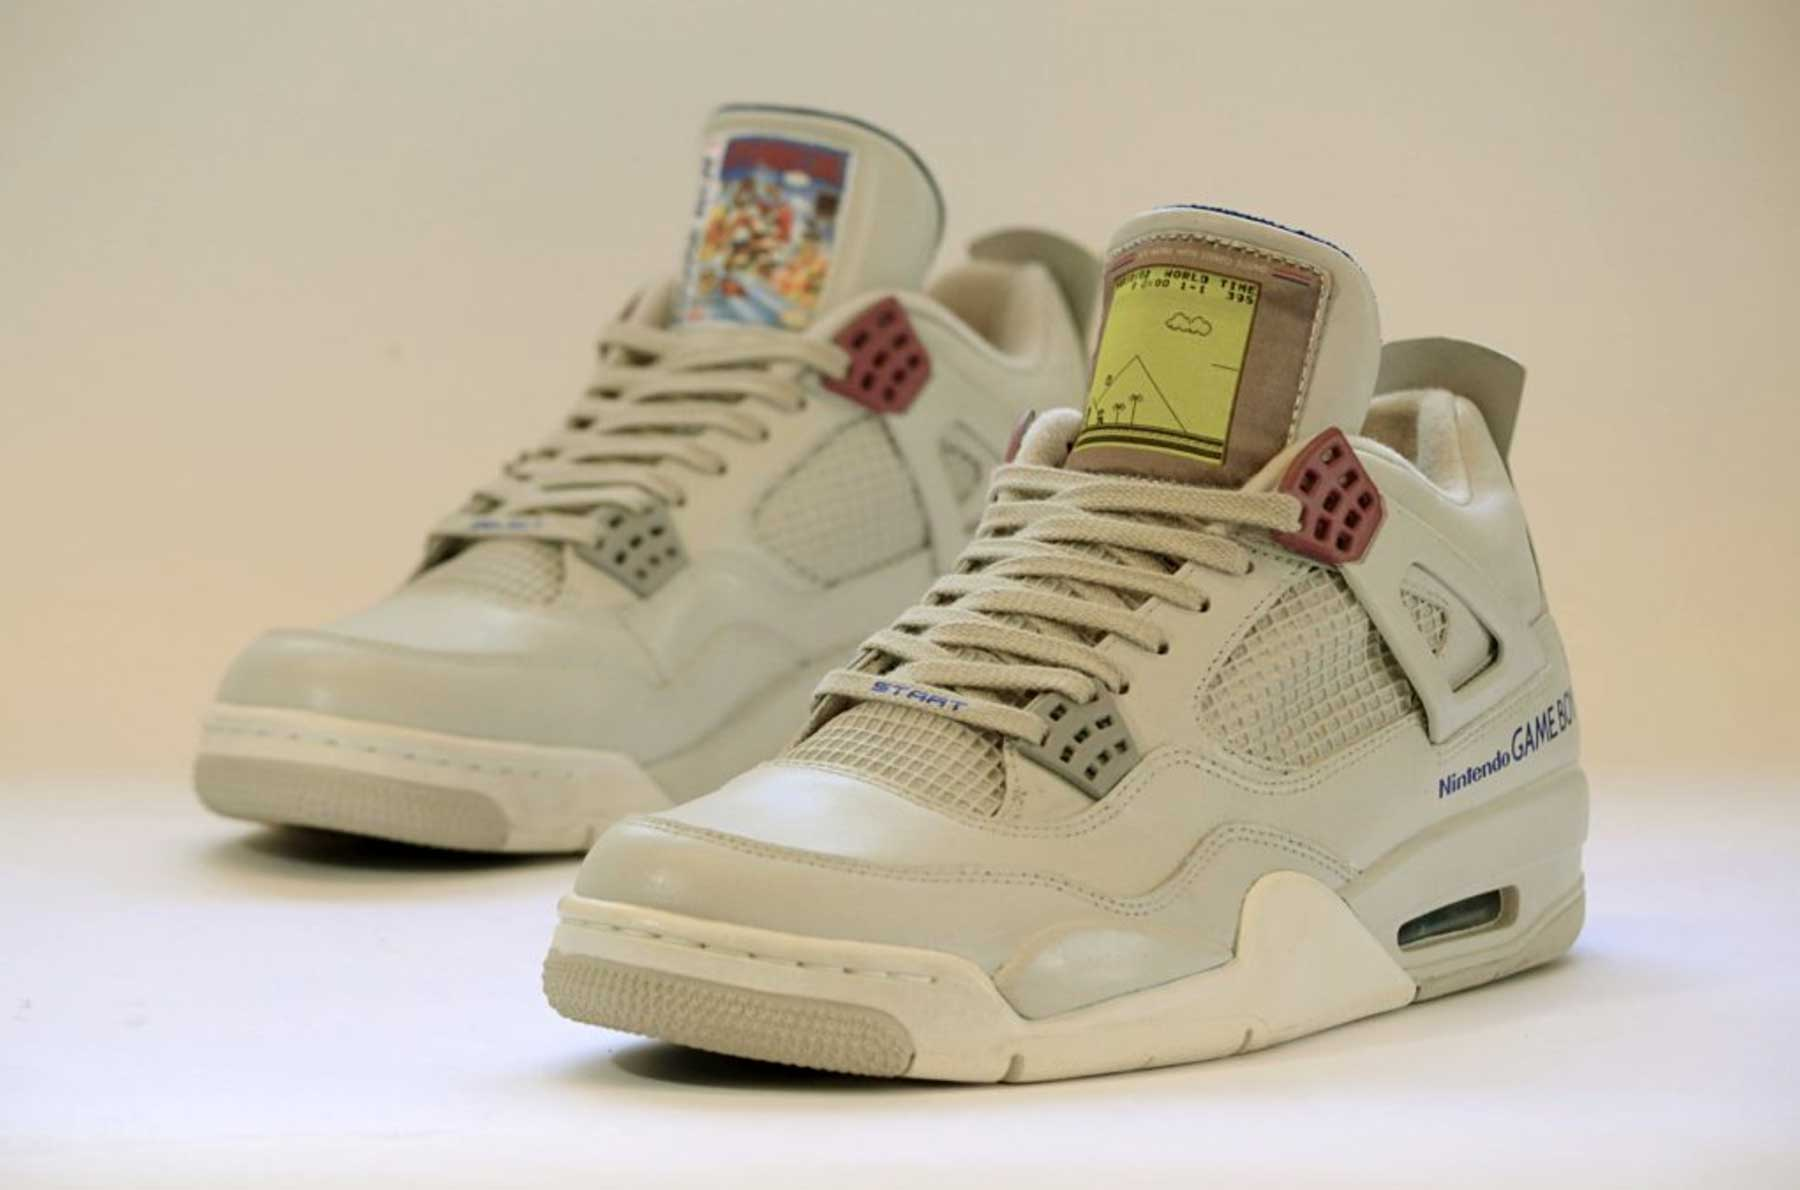 GAME BOY Sneakers GAME-BOY-Sneakers-Air-Jordan-IV-Super-Mario_02